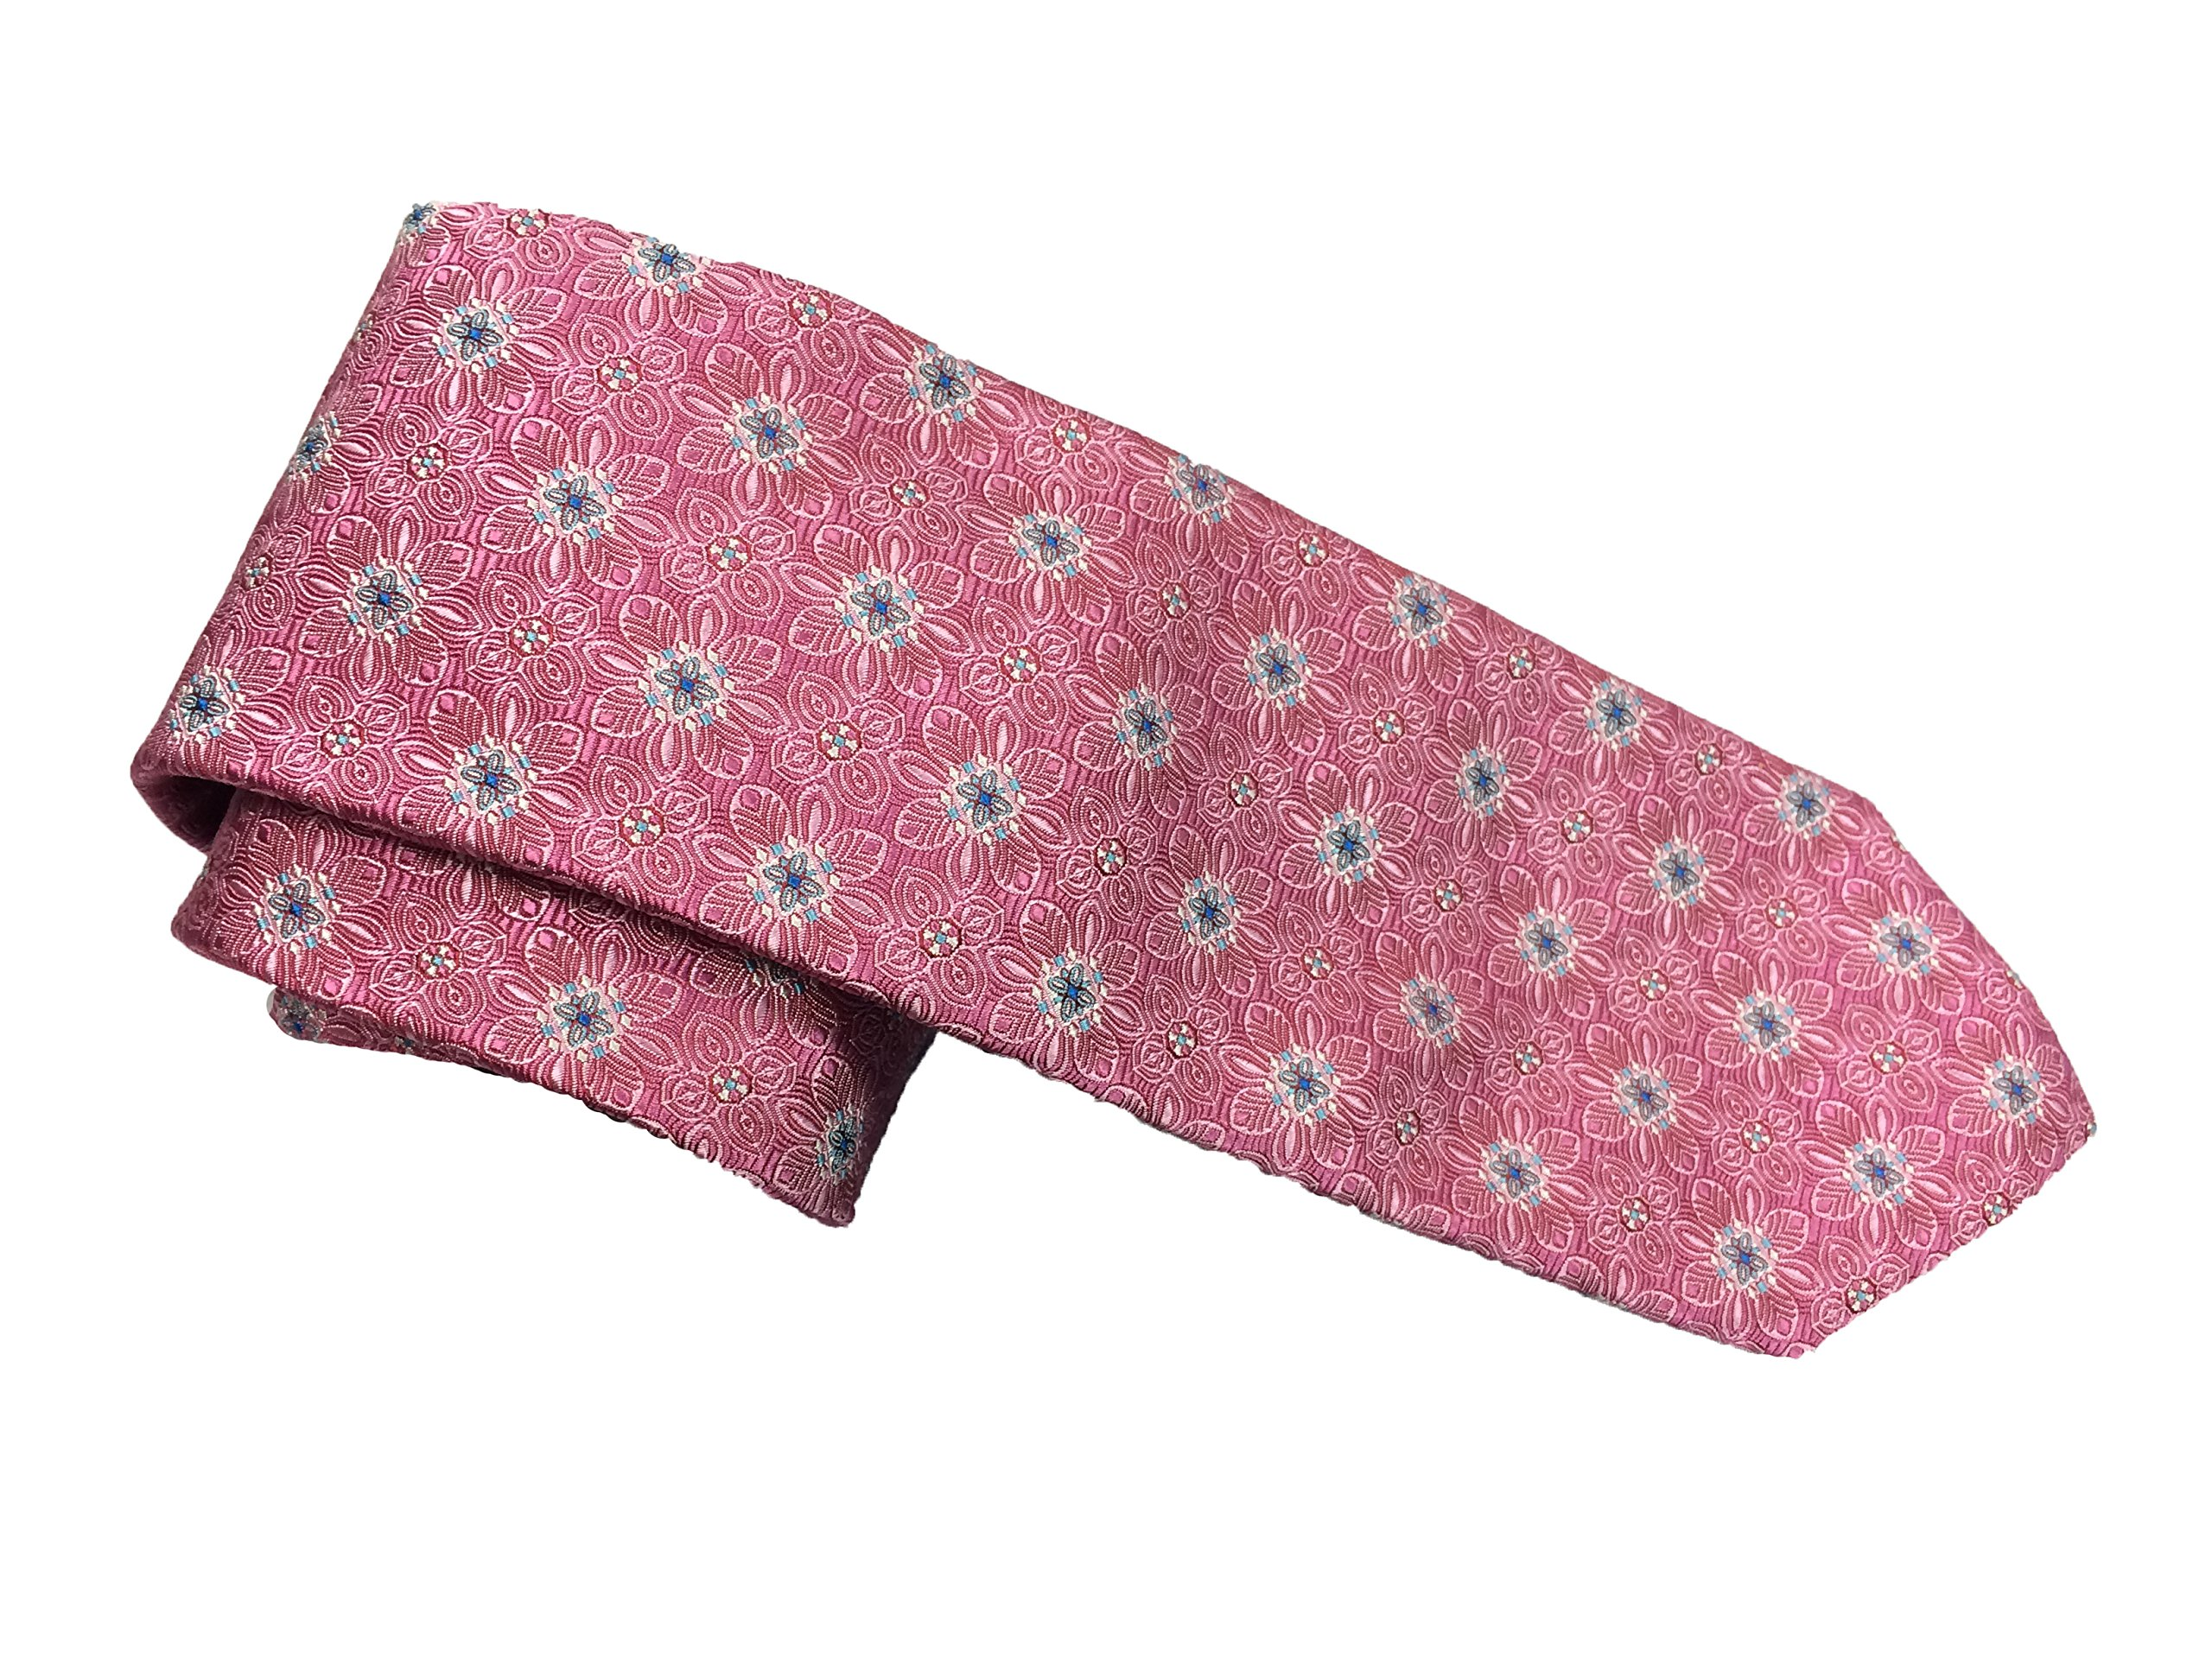 Robert Talbott Pink and White with Blue Floral Corporate Best of Class Extra Long Tie